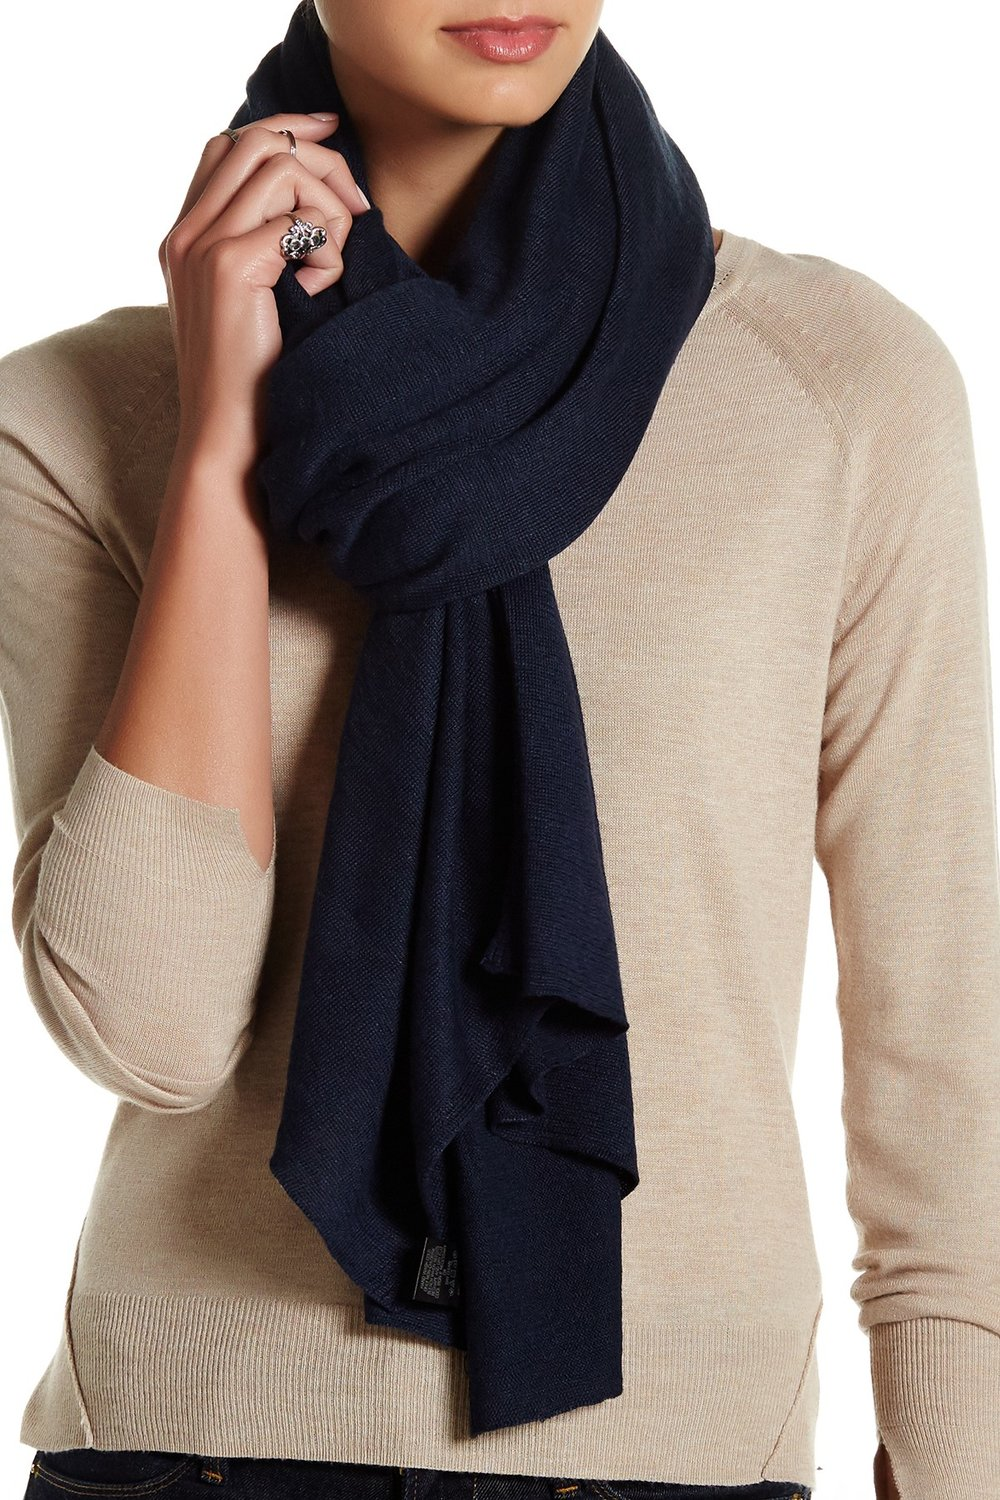 SKULL CASHMERE Emily Linen Scarf. Available in multiple colors. Nordstrom Rack. Was: $253. Now: $119.